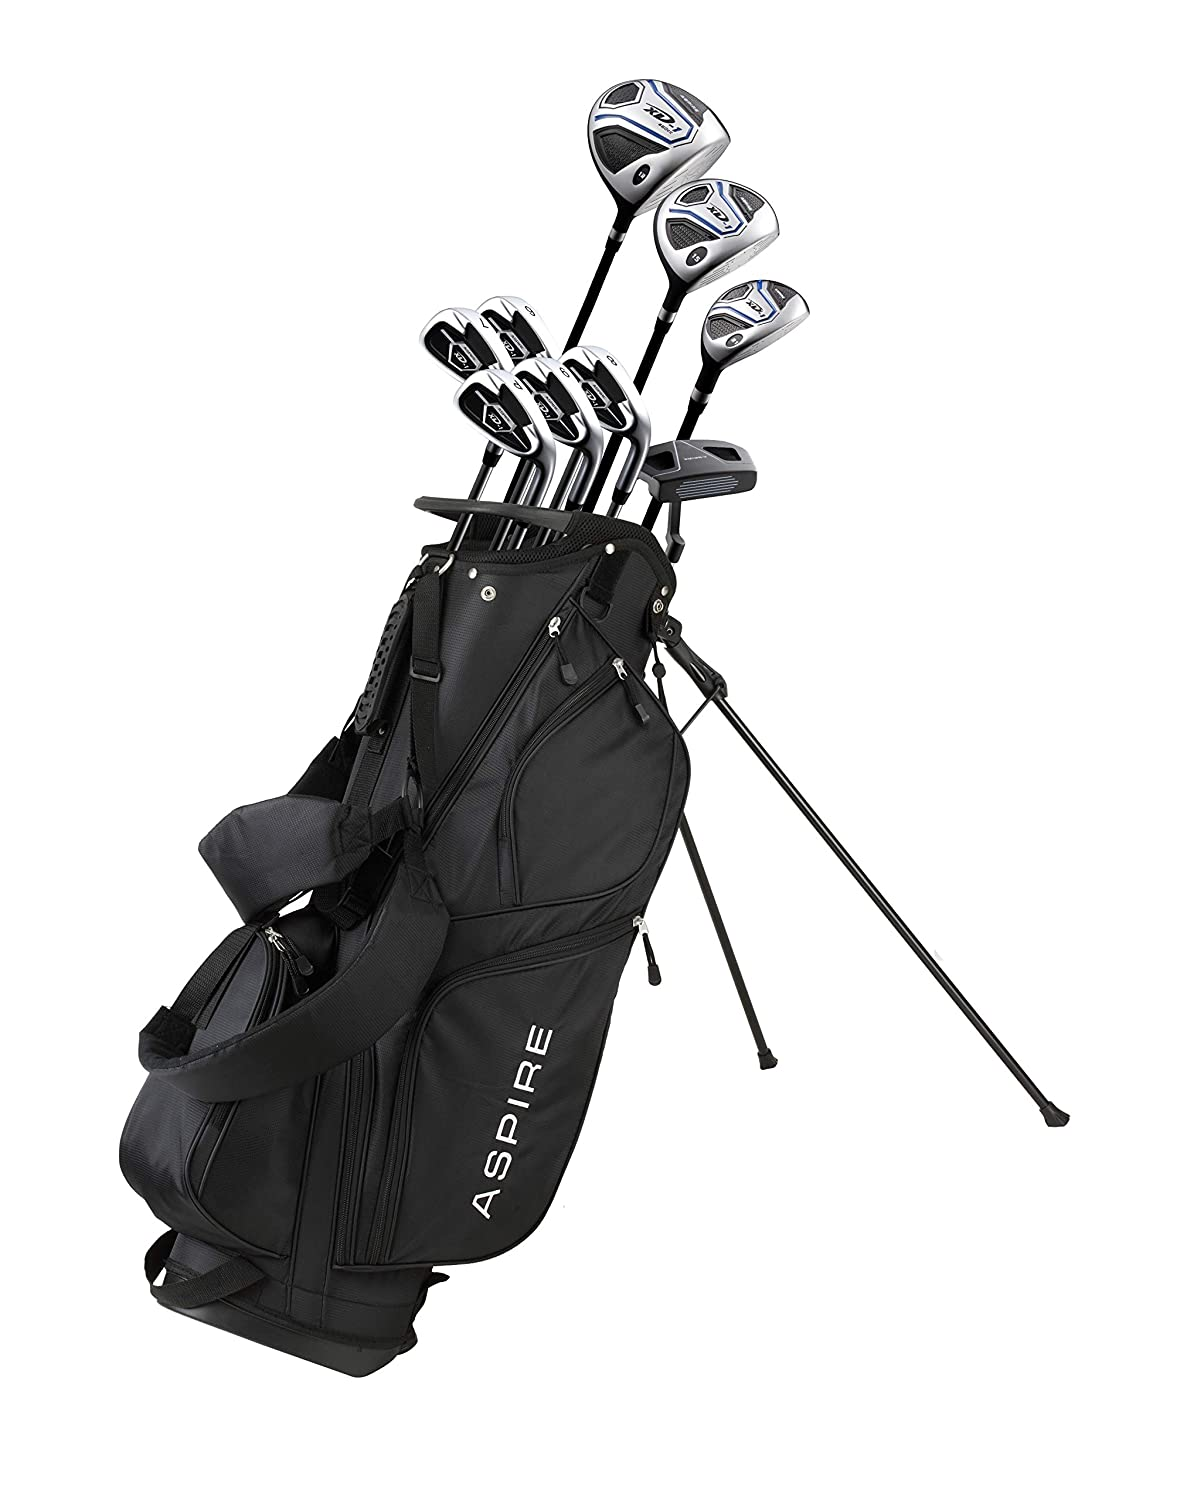 Aspire XD1 Men s Complete Golf Clubs Package Set Includes Titanium Driver, S.S. Fairway, S.S. Hybrid, S.S. 6-PW Irons, Putter, Bag, 3 H C s Right Hand – Blue – Choose Size